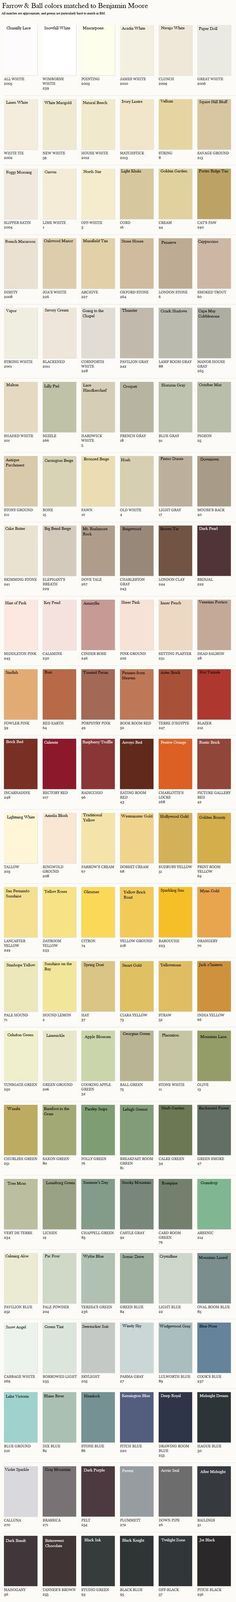 Farrow & Ball colors matched to Benjamin Moore / The English Room Blog